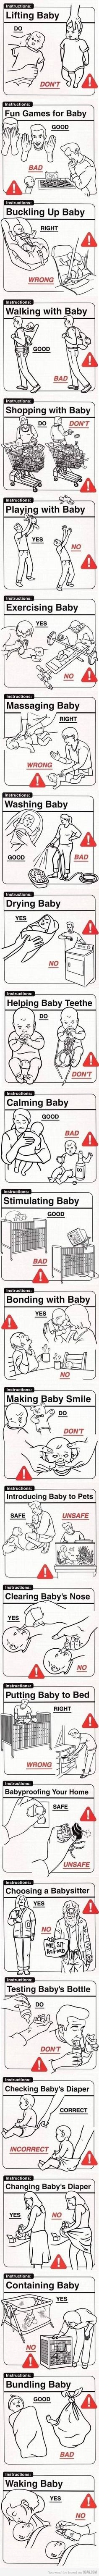 Haha! The do's and don'ts of parenting.